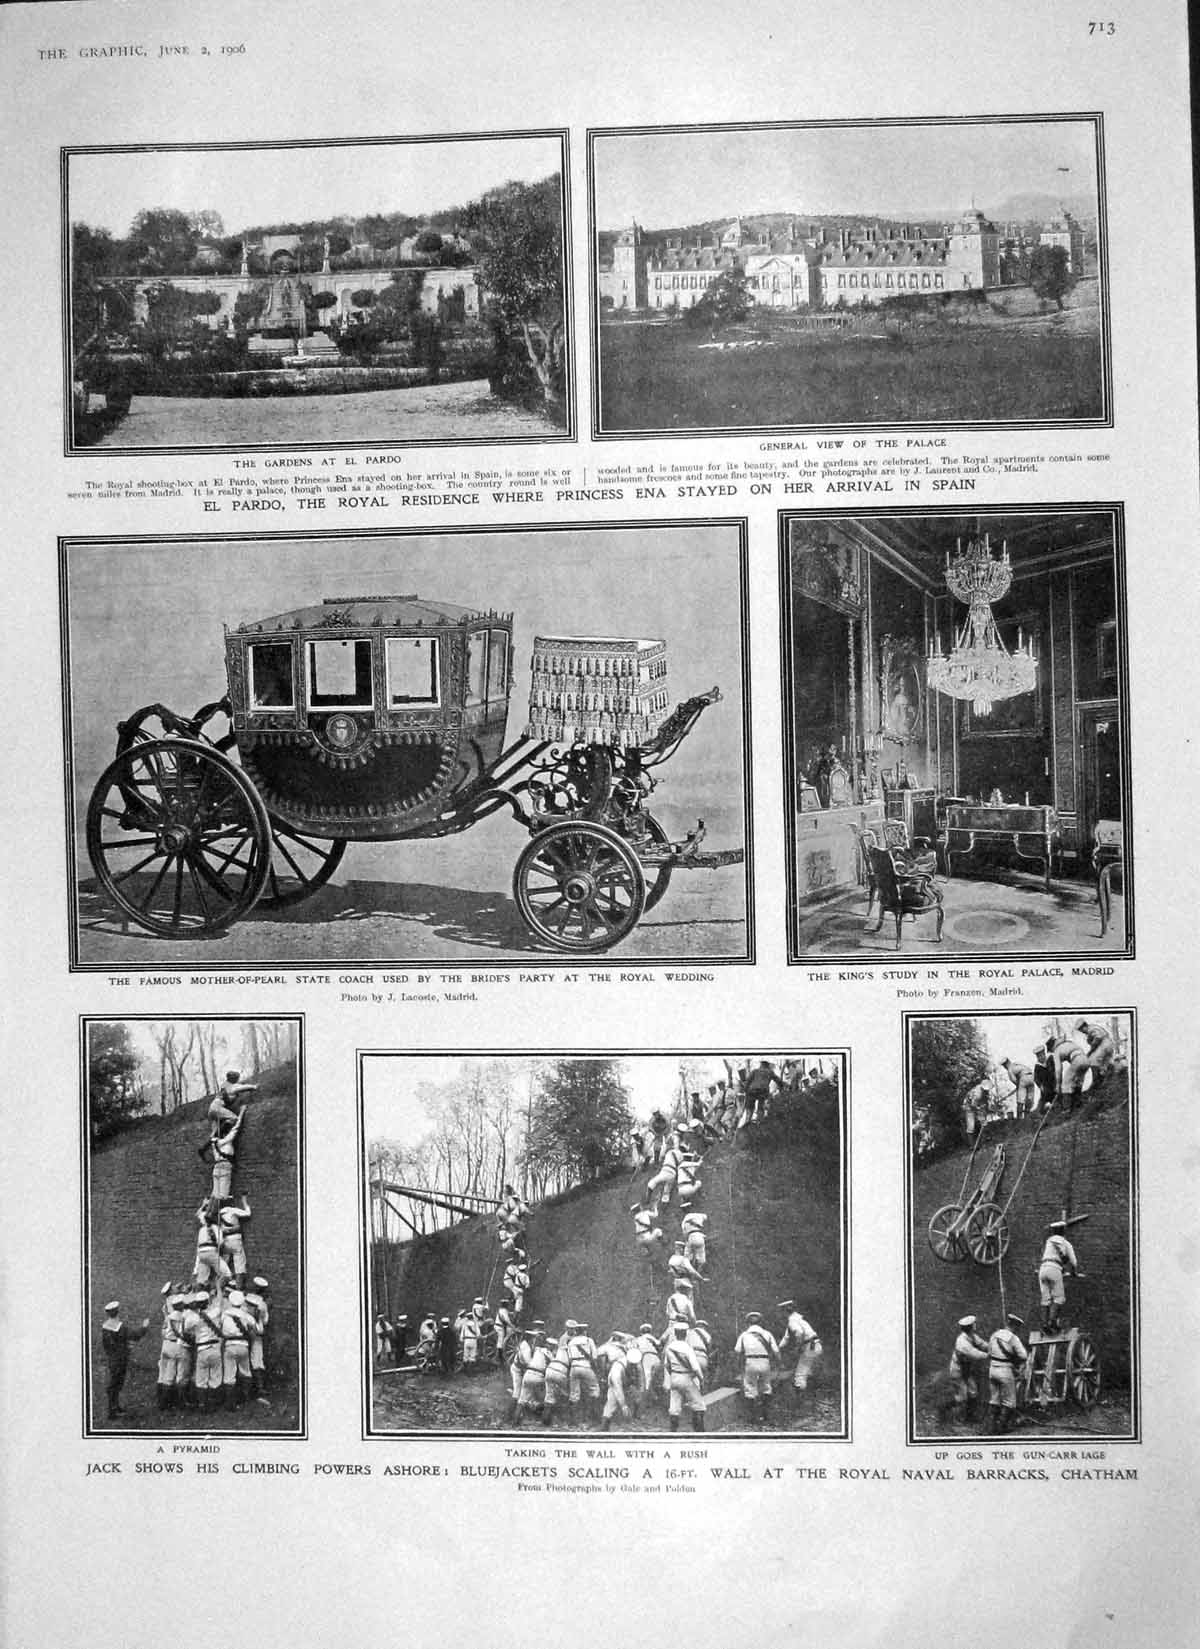 Old-Antique-Print-1906-Bluejackets-Chatham-Palace-Madrid-Goodwyn-Vaughan-20th